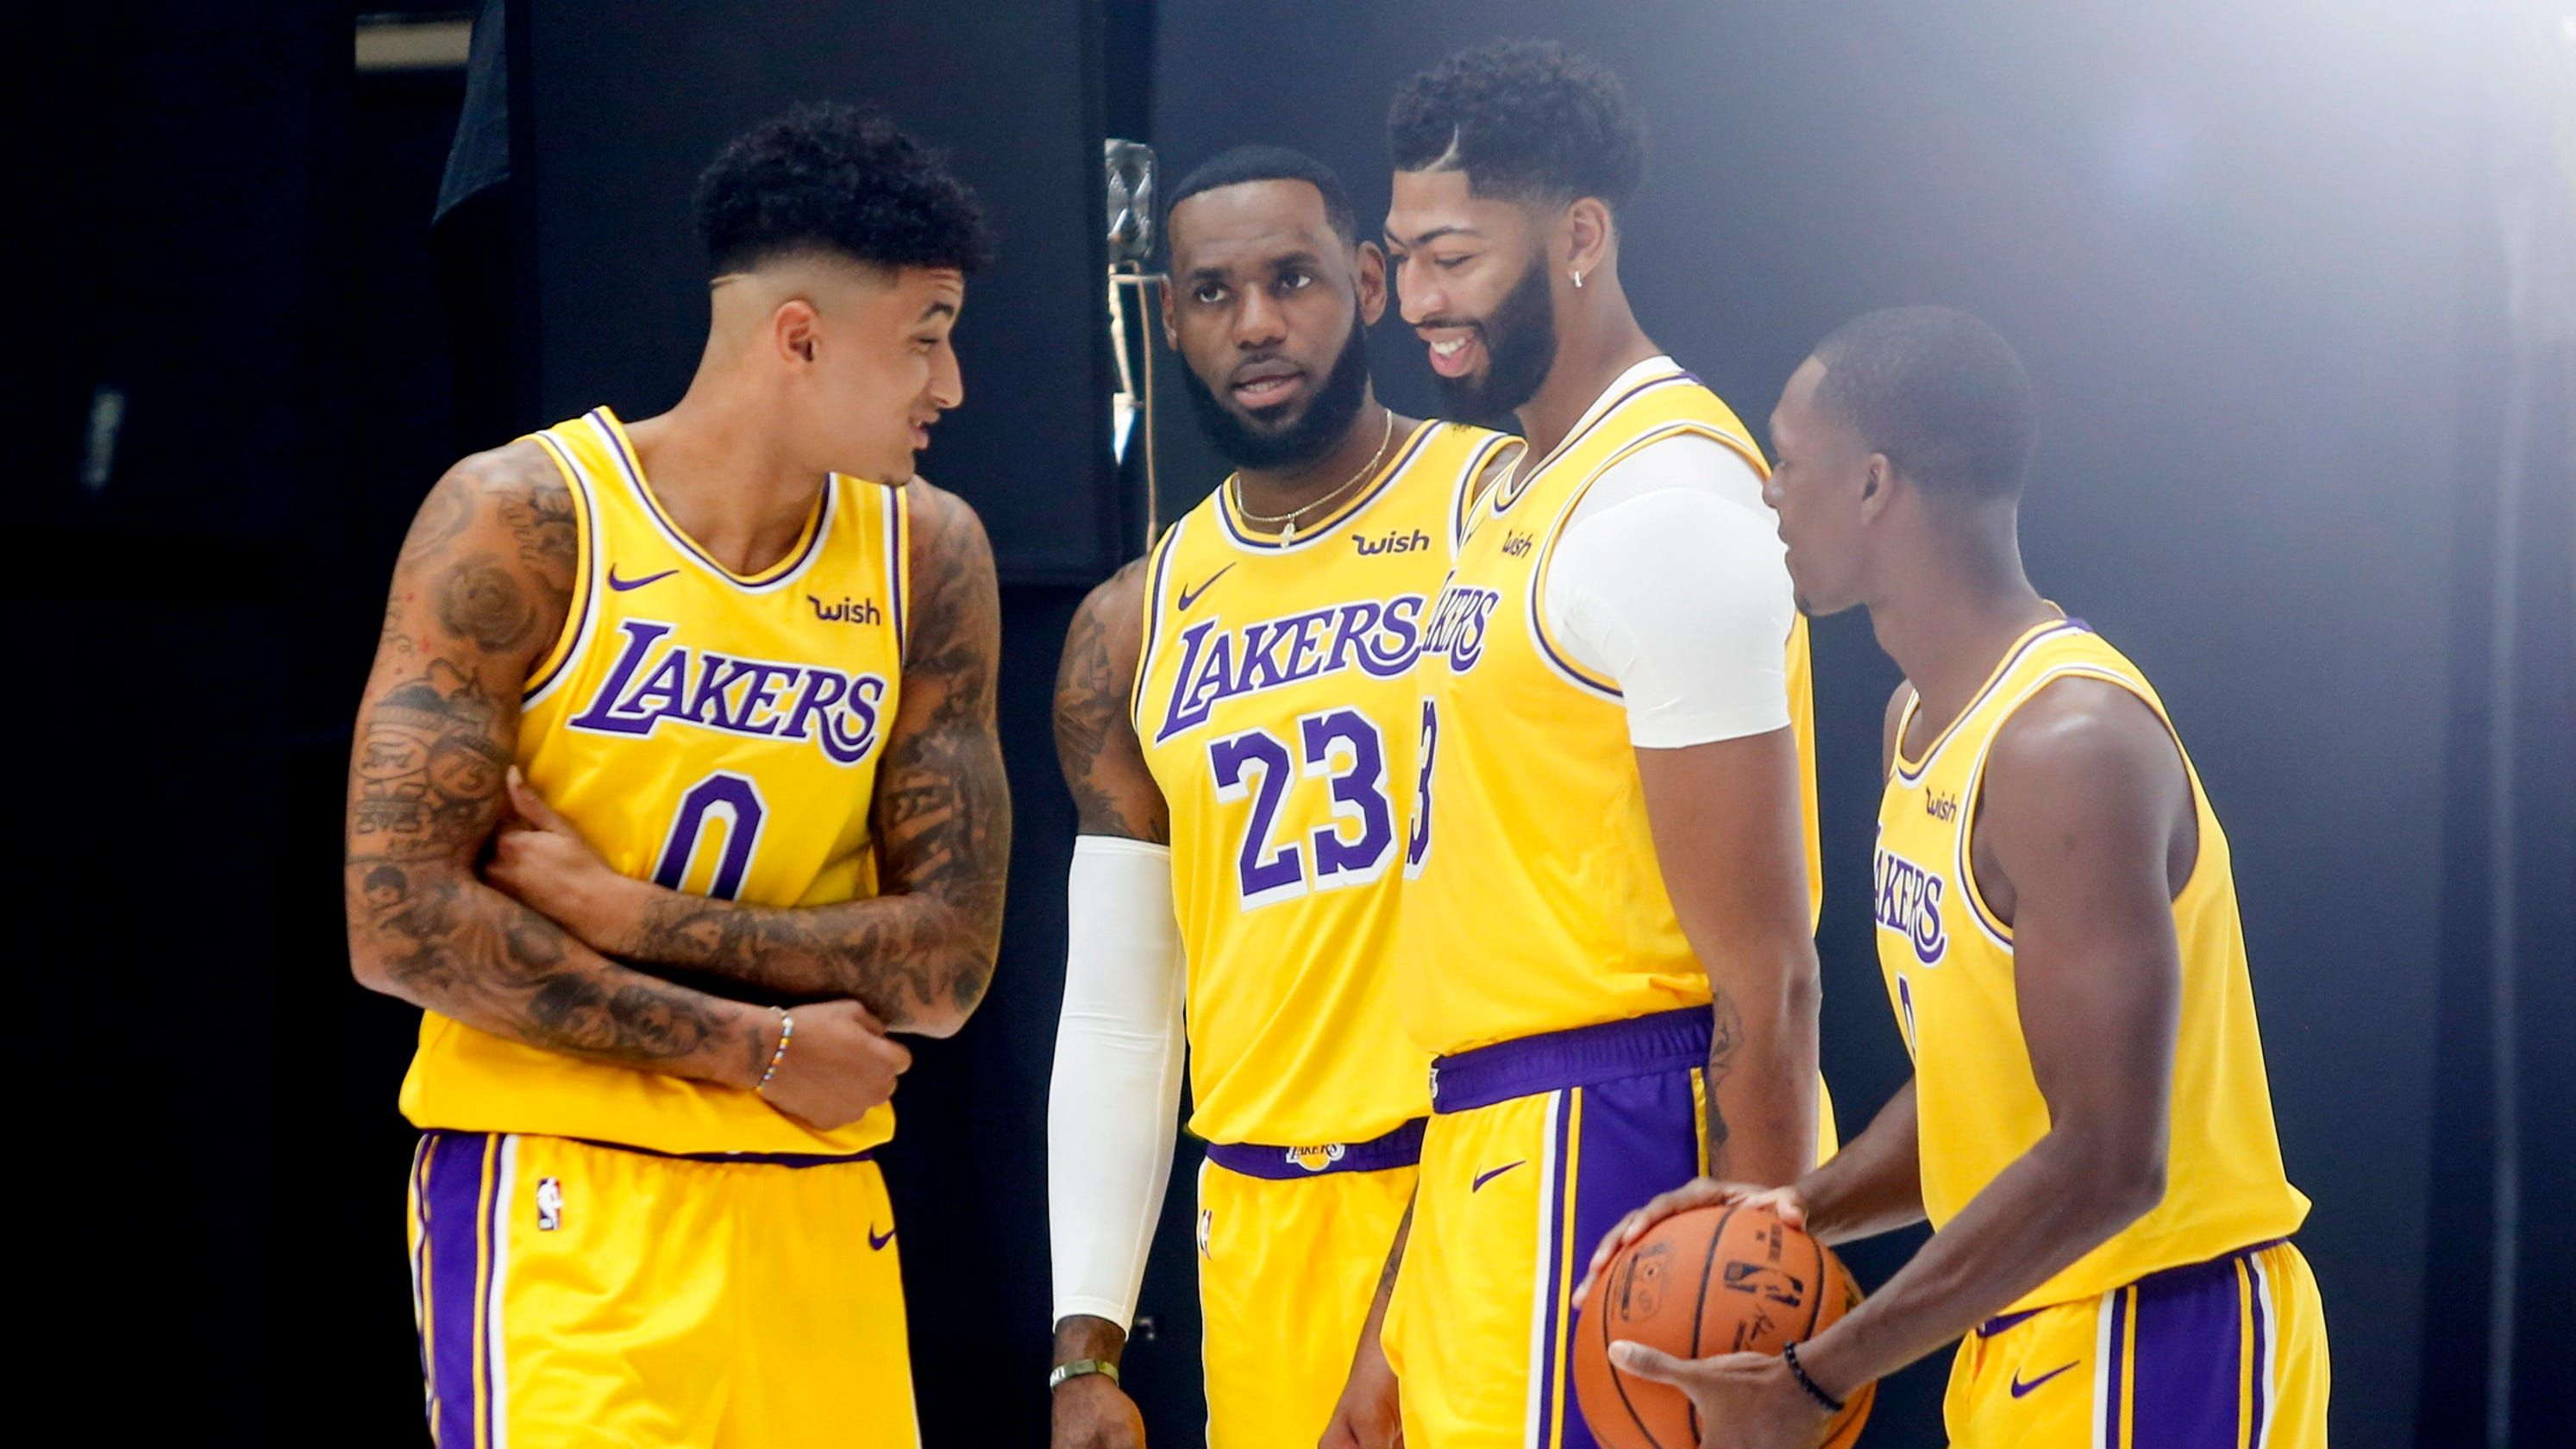 Nba Rumors Lakers Taking Huge Risk Trading Every Team Player Except Lebron James And Anthony Davis In 2020 Nba Rumors Anthony Davis Lebron James